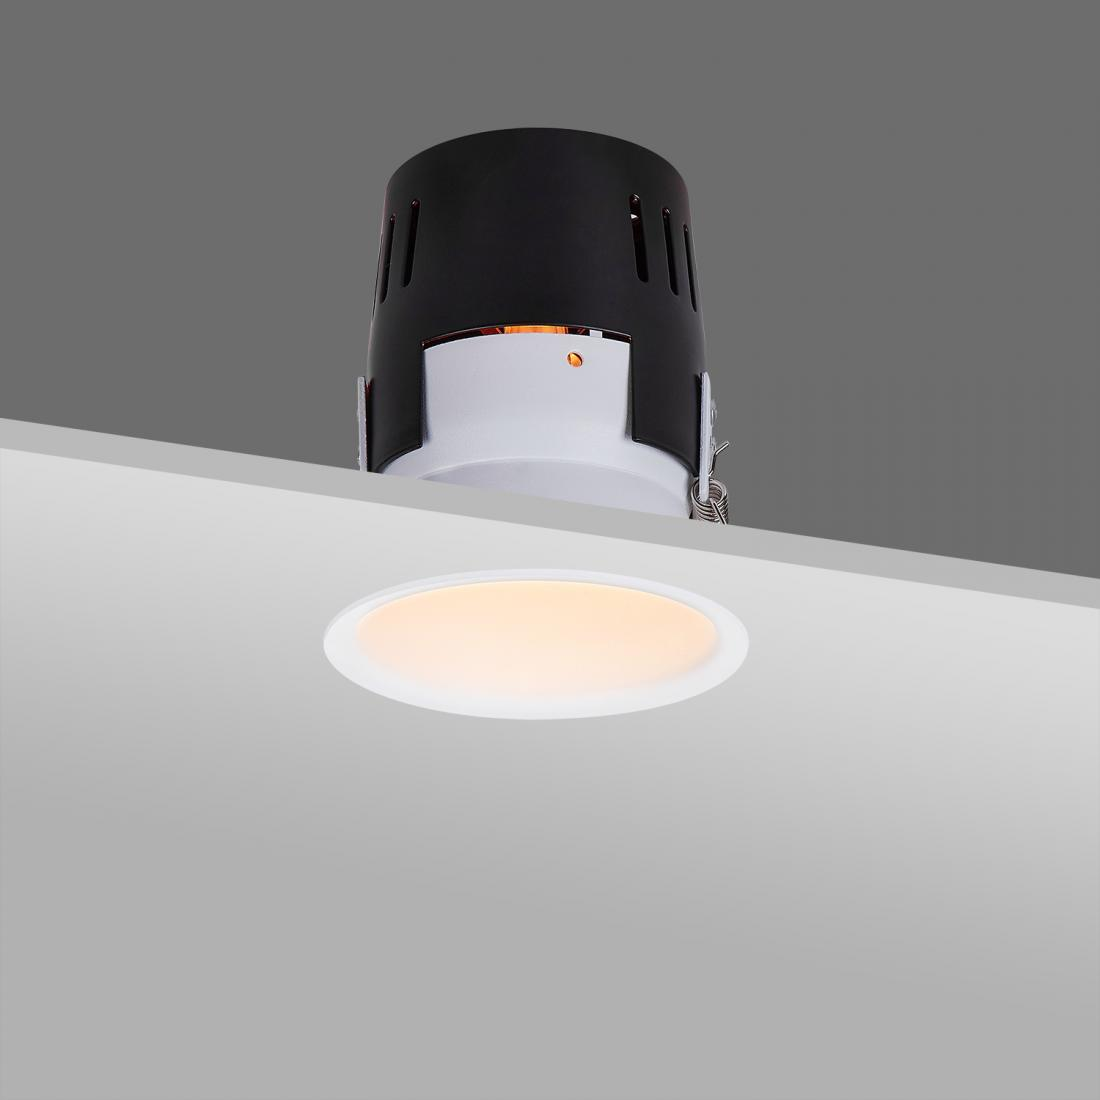 Ceiling Recessed Halogen MR16 Downlight